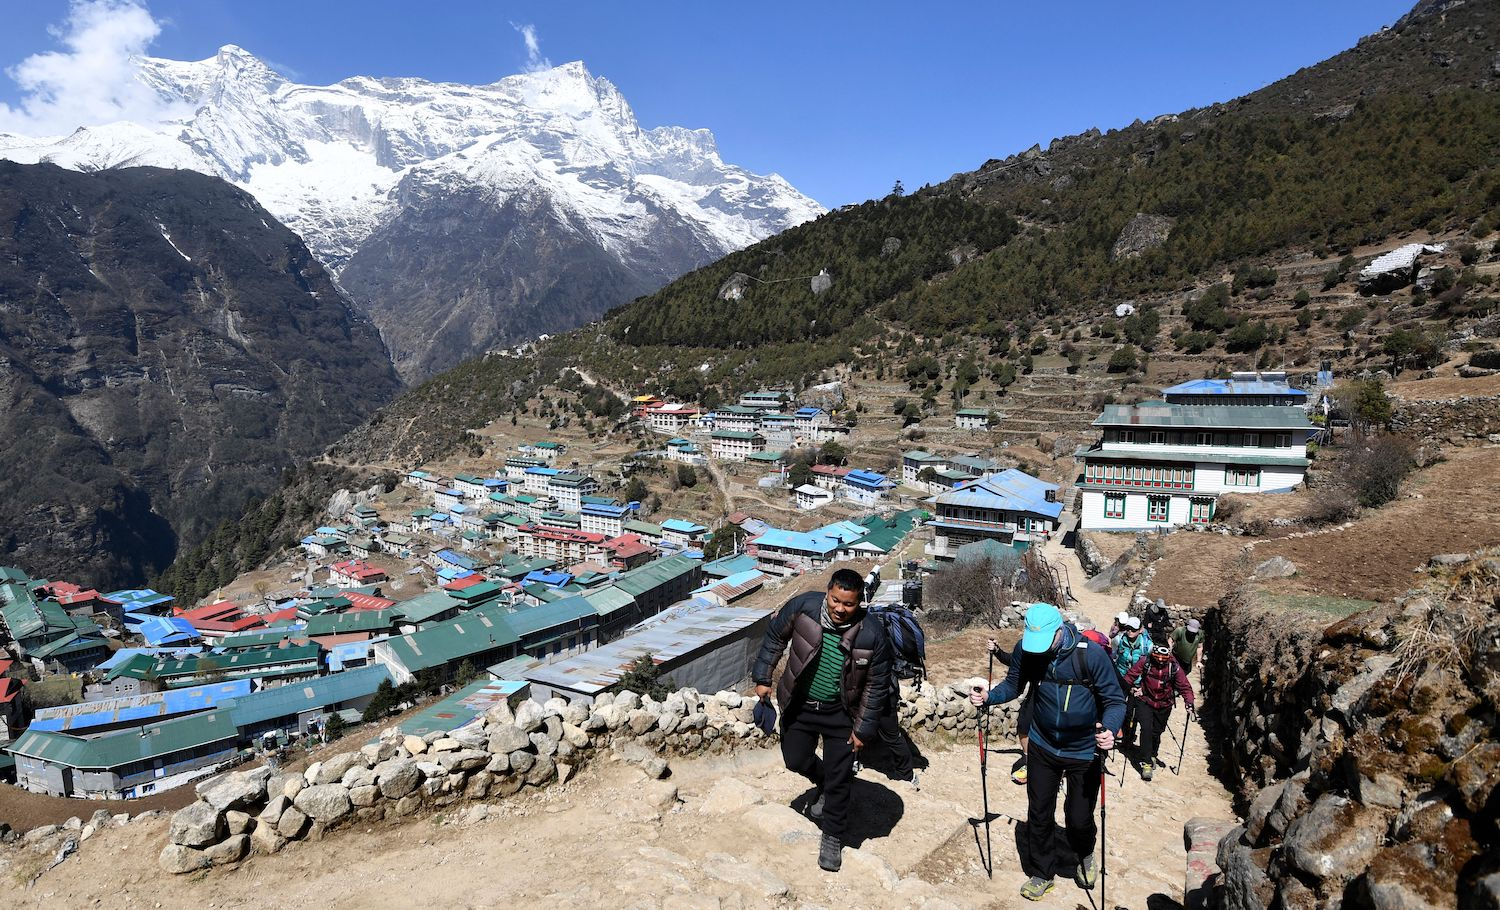 Trekkers walk along a path at Namche Bazar town in the Everest region of Solukhumbu district on April 25, 2021. (Photo by PRAKASH MATHEMA / AFP) (Photo by PRAKASH MATHEMA/AFP via Getty Images)